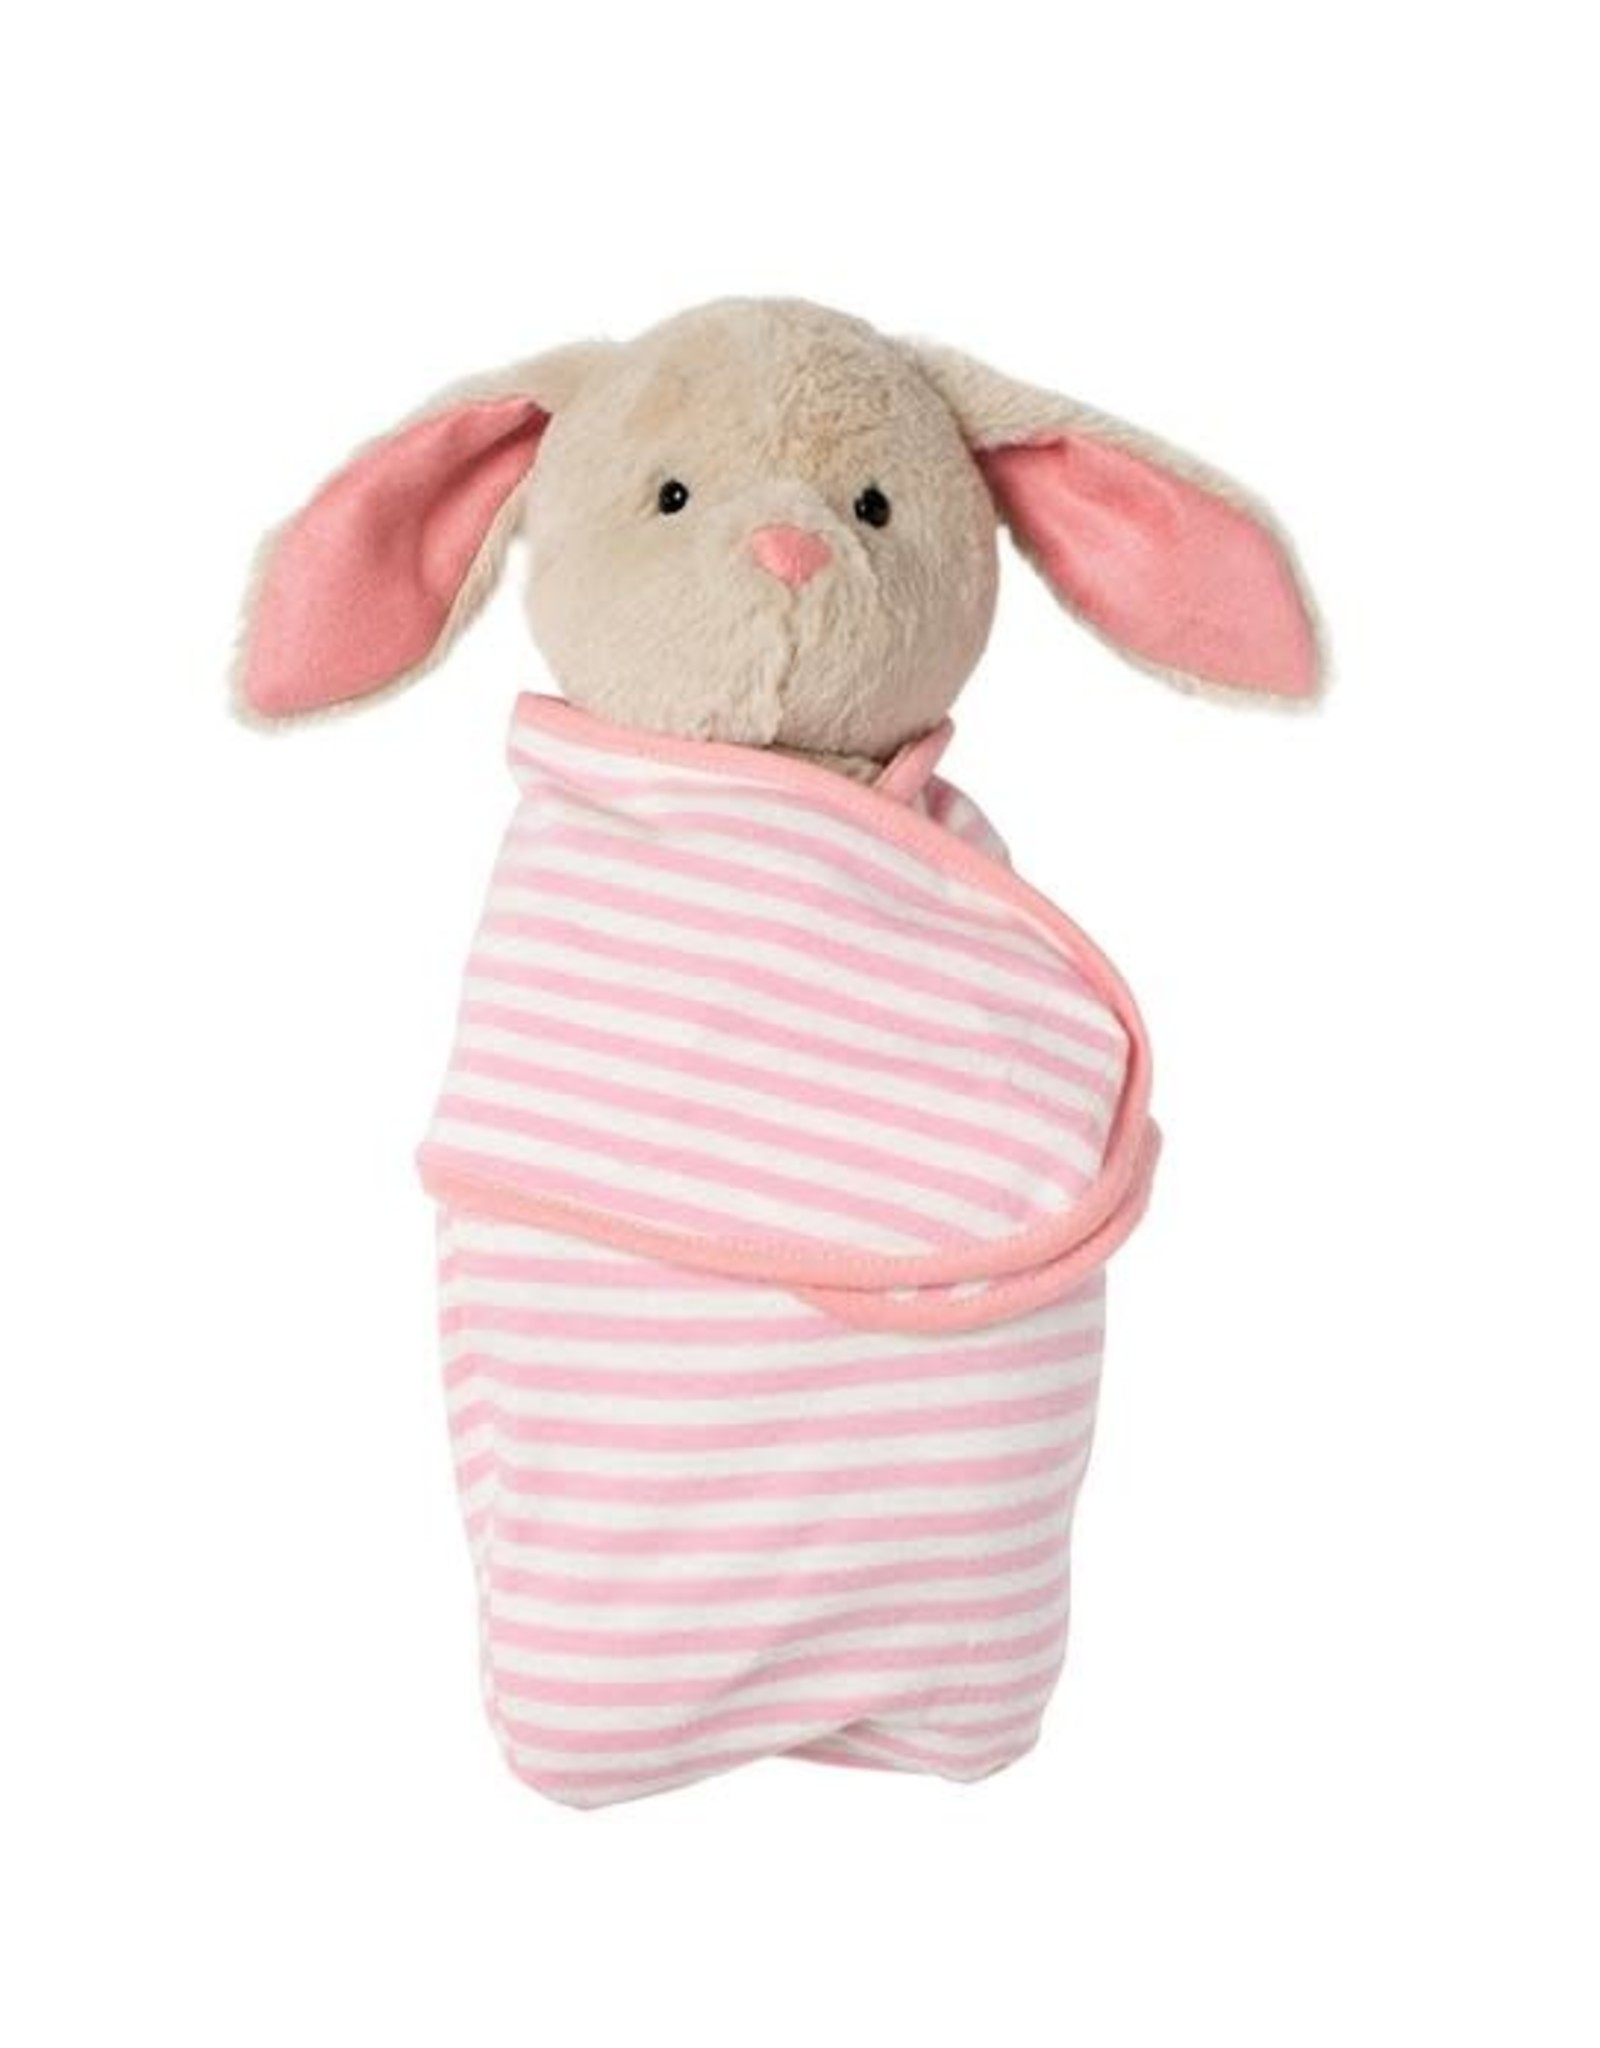 Manhattan Toy Swaddle Baby Bunny Plush